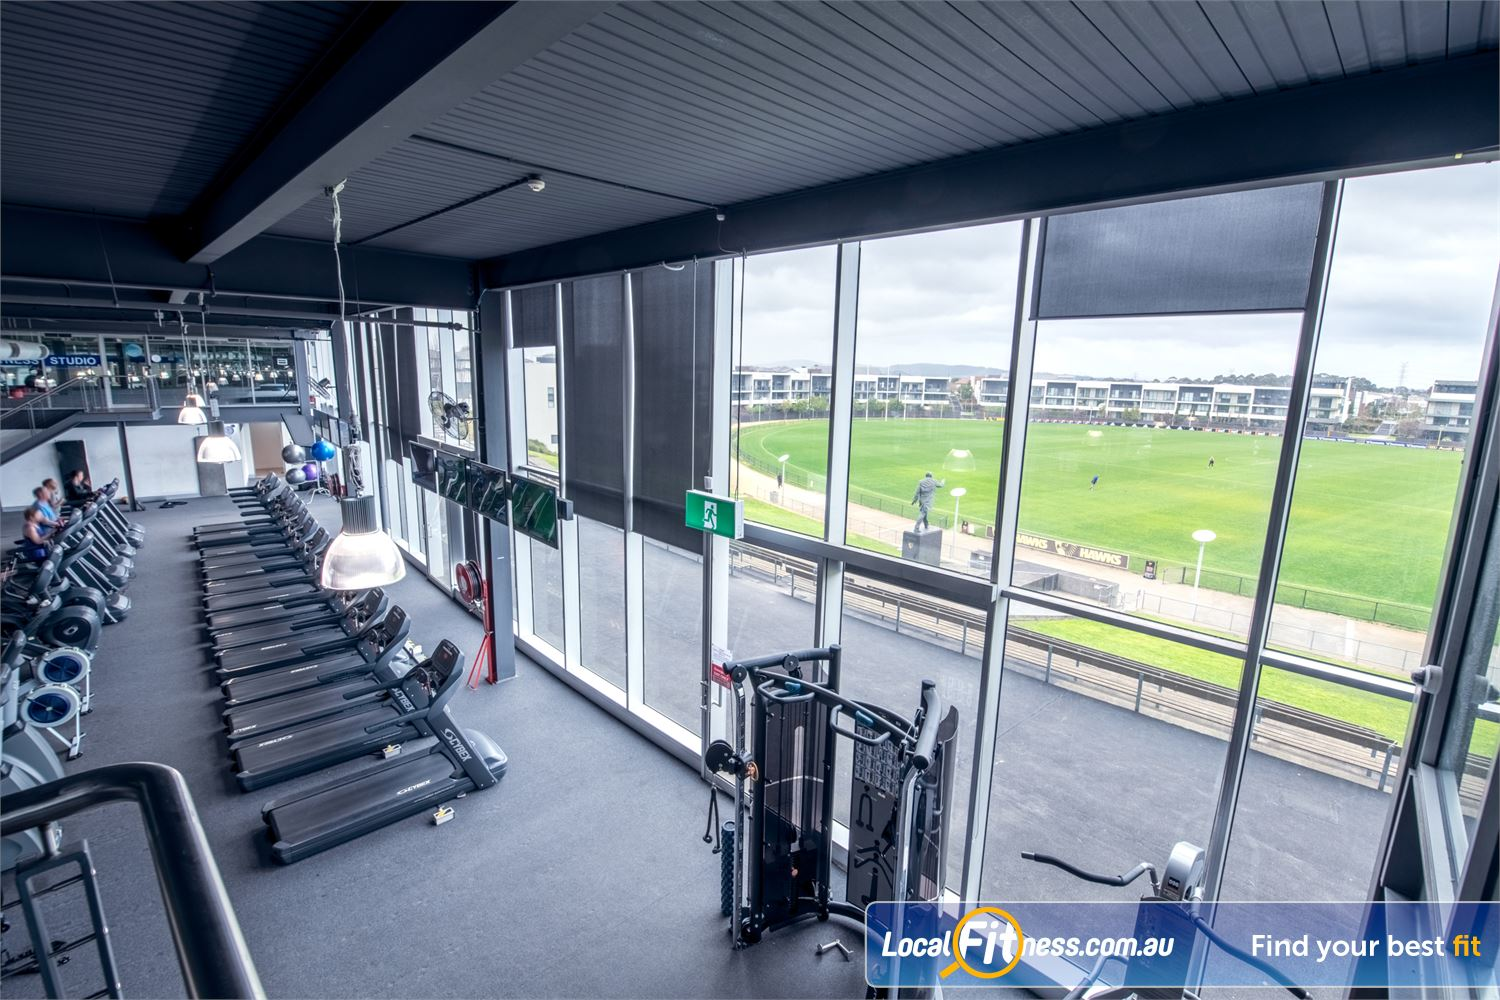 Goodlife Health Clubs Waverley Park Near Springvale Among the best views from a cardio area in Melbourne.